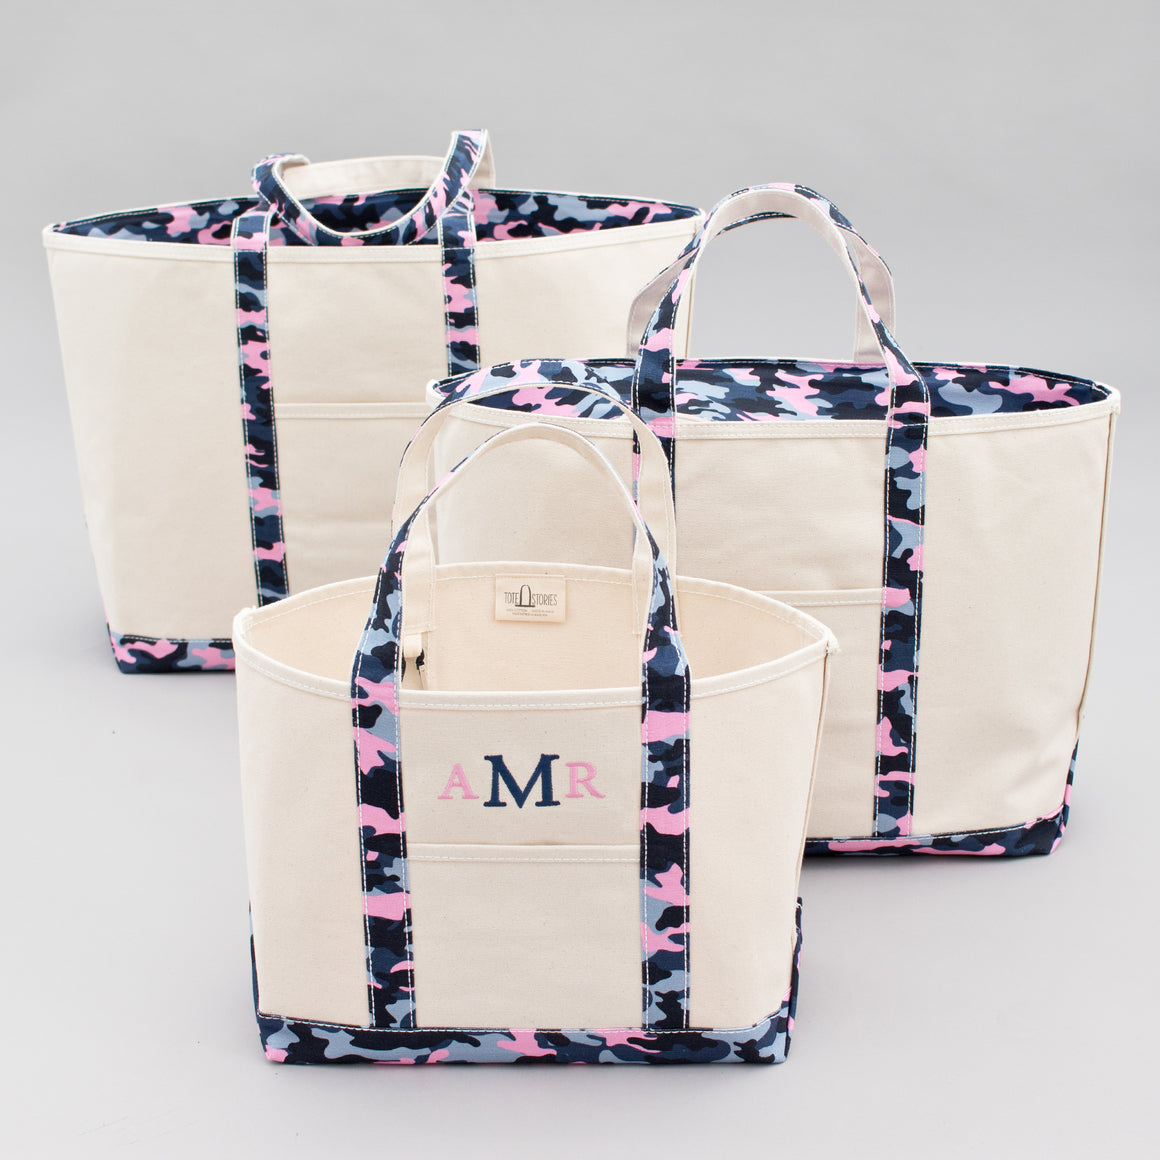 Limited Tote Bag - Camo Falsterbo Sky - Sizes